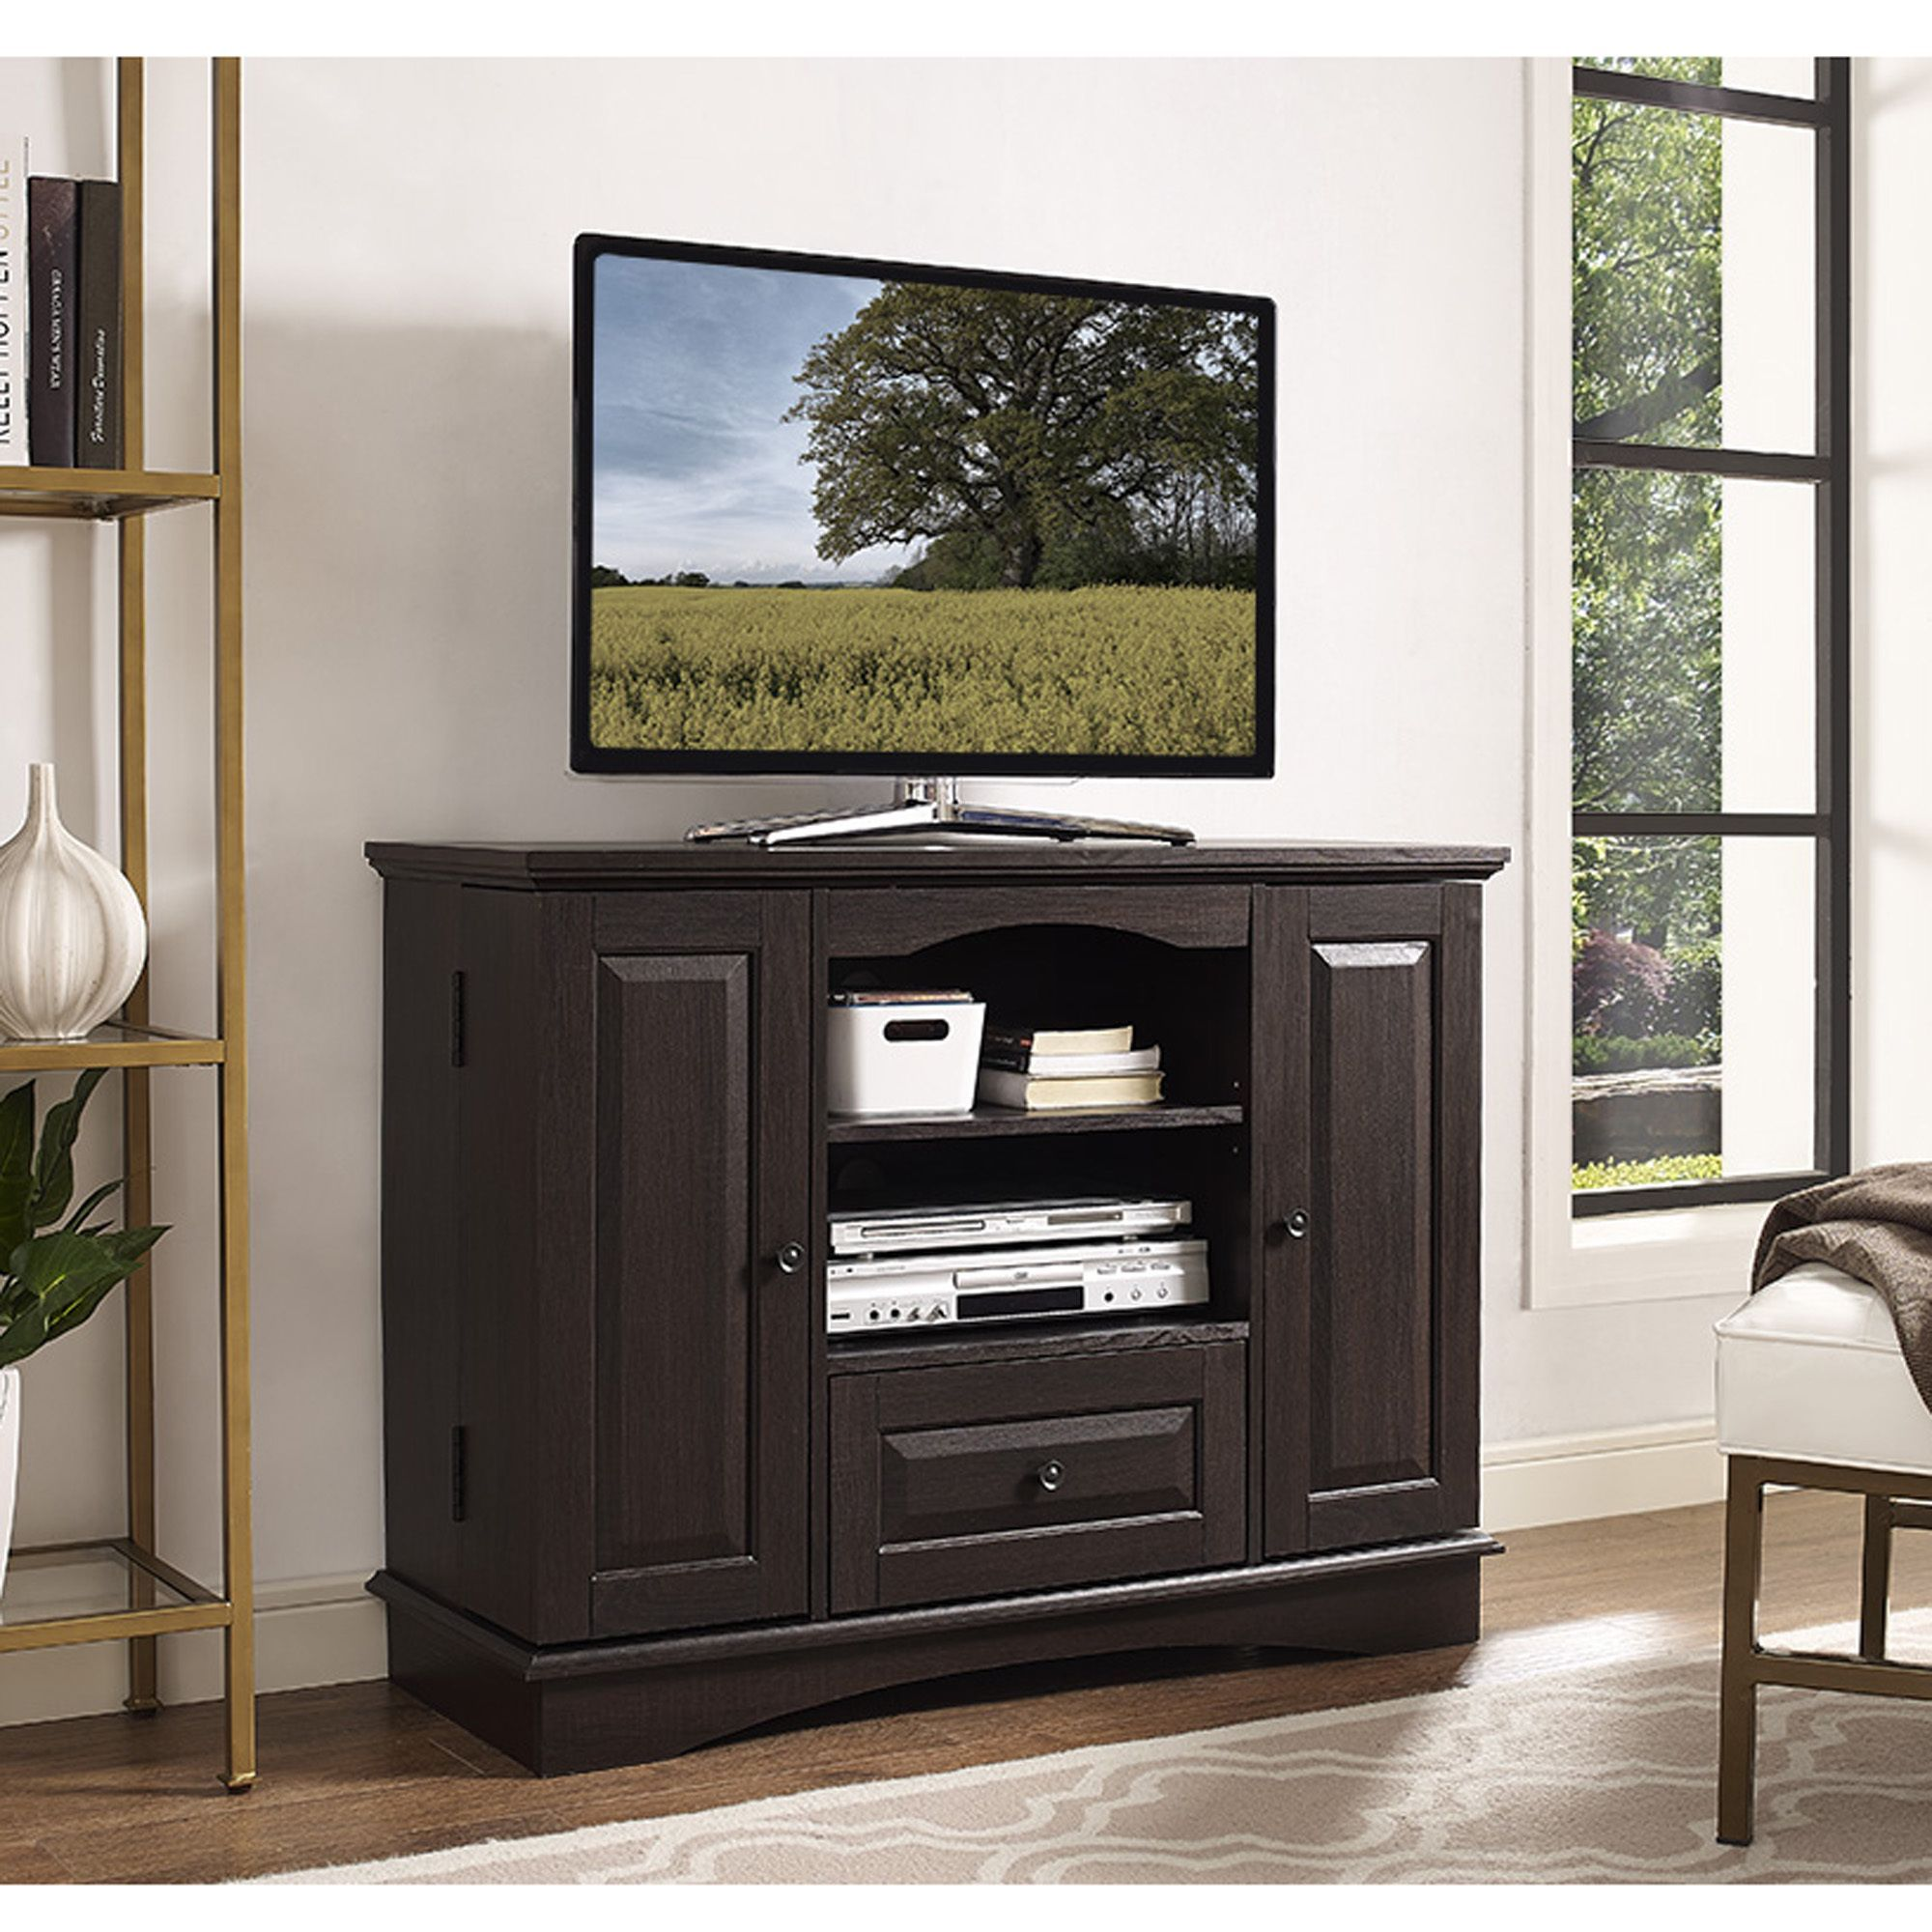 42 Inch Espresso Wood Tall Tv Stand With Storage 42 Espresso Wood